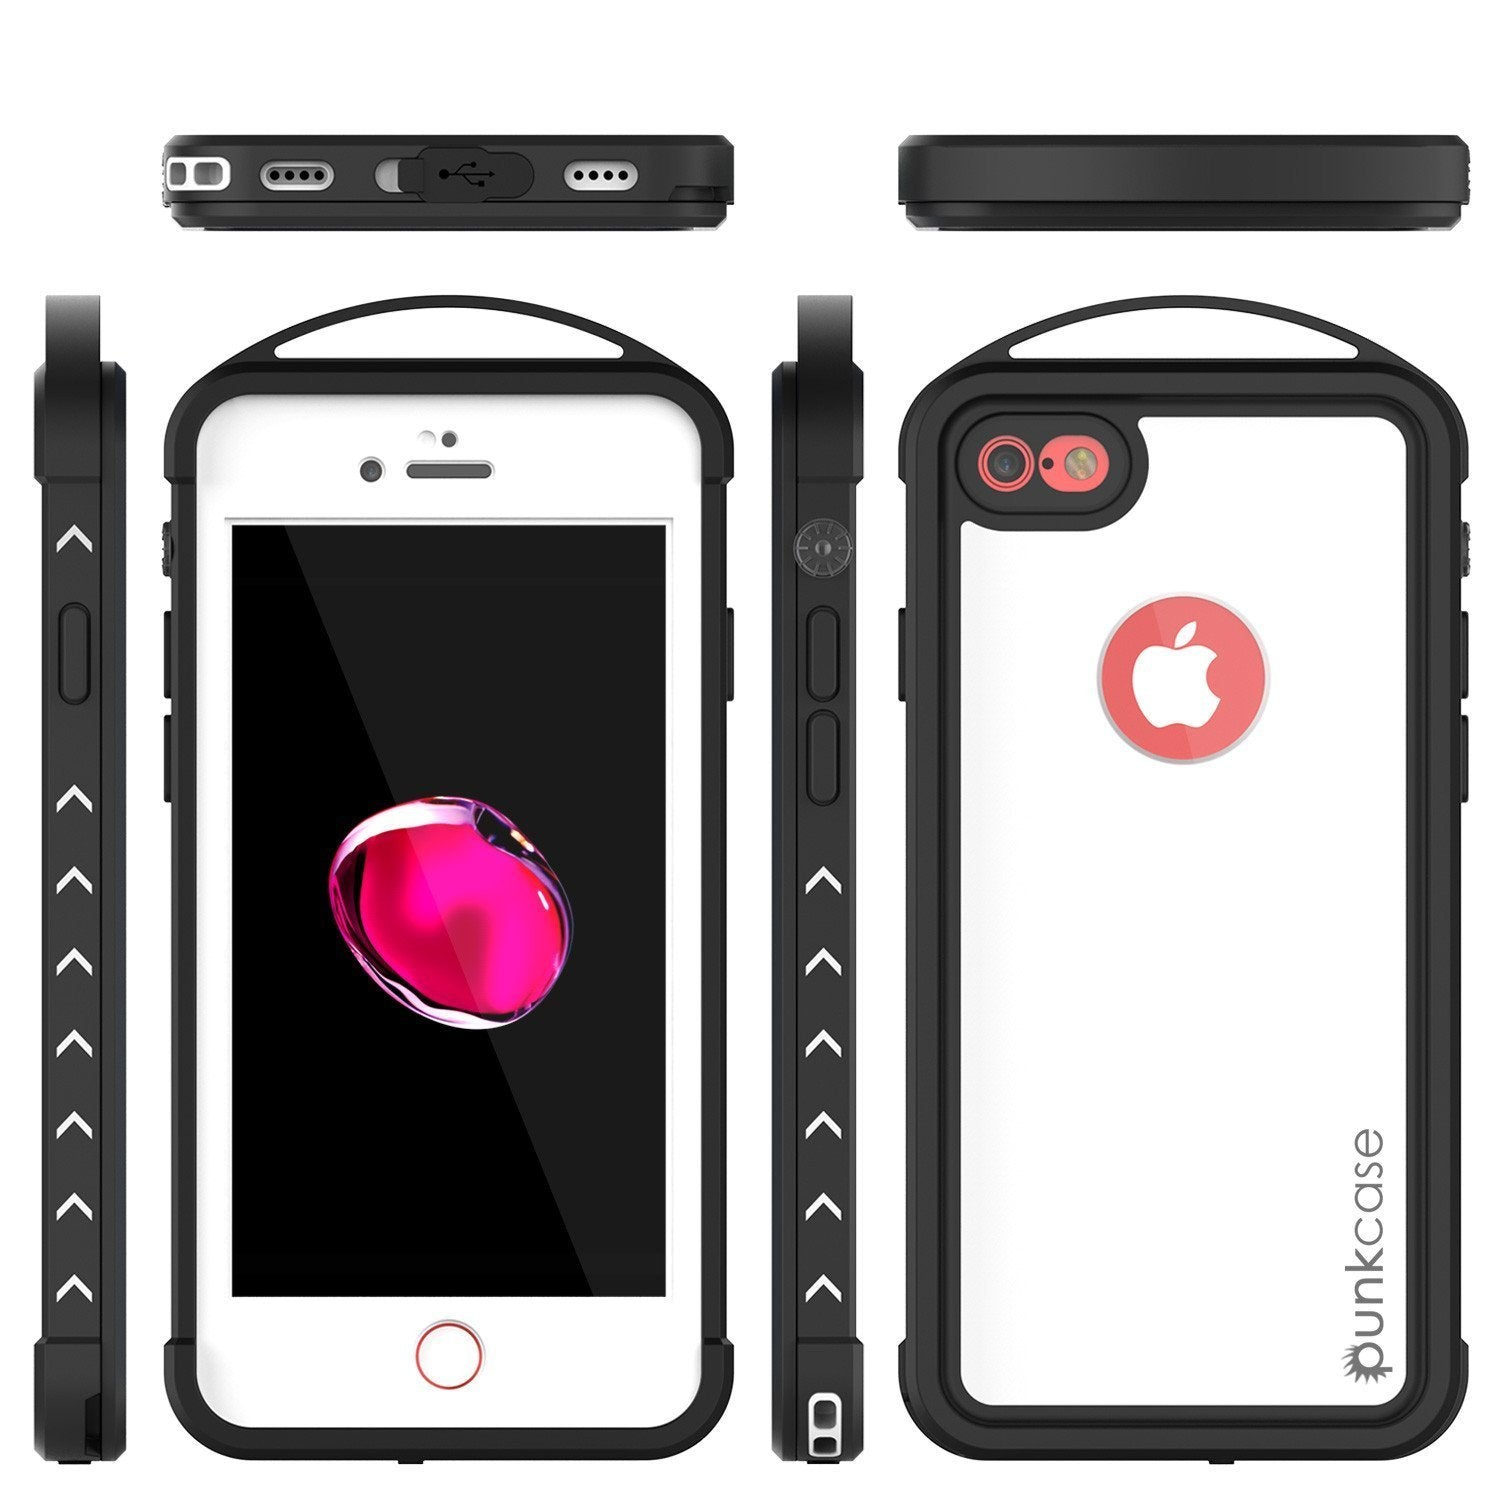 iPhone 8 Waterproof Case, Punkcase ALPINE Series, CLEAR | Heavy Duty Armor Cover